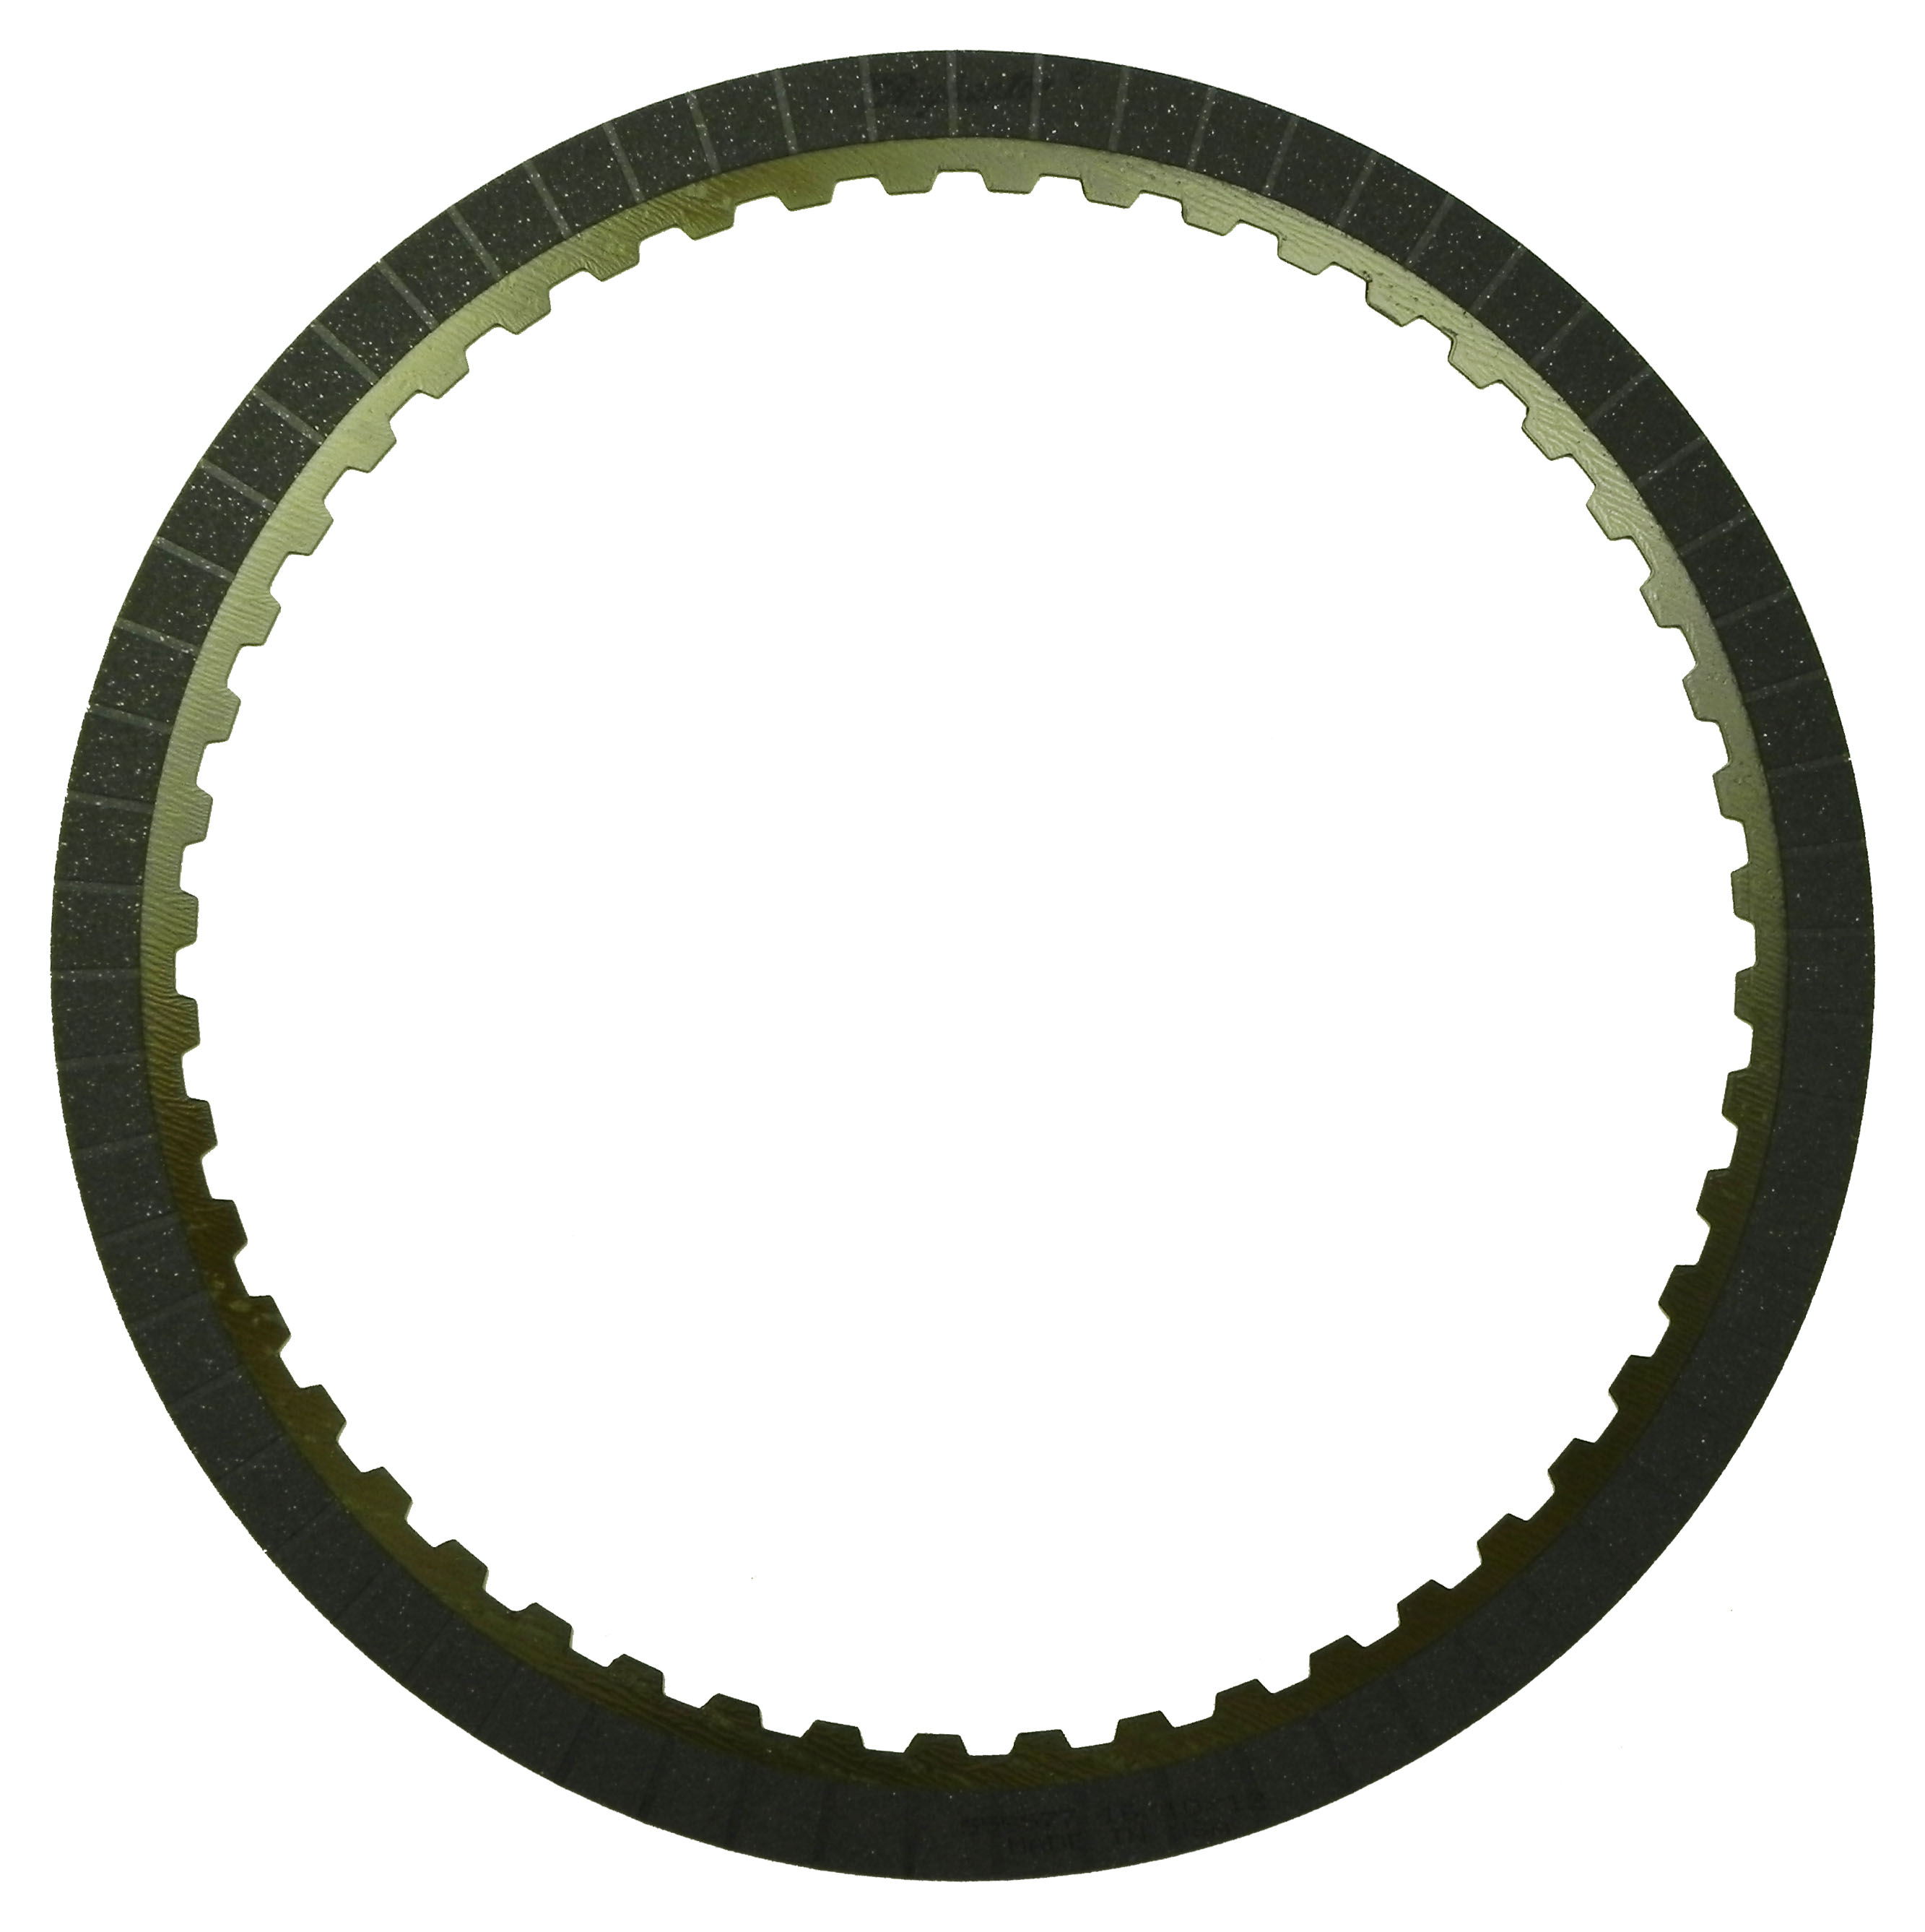 R558577 | 2009-ON Friction Clutch Plate OE Replacement Low, Reverse Clutch